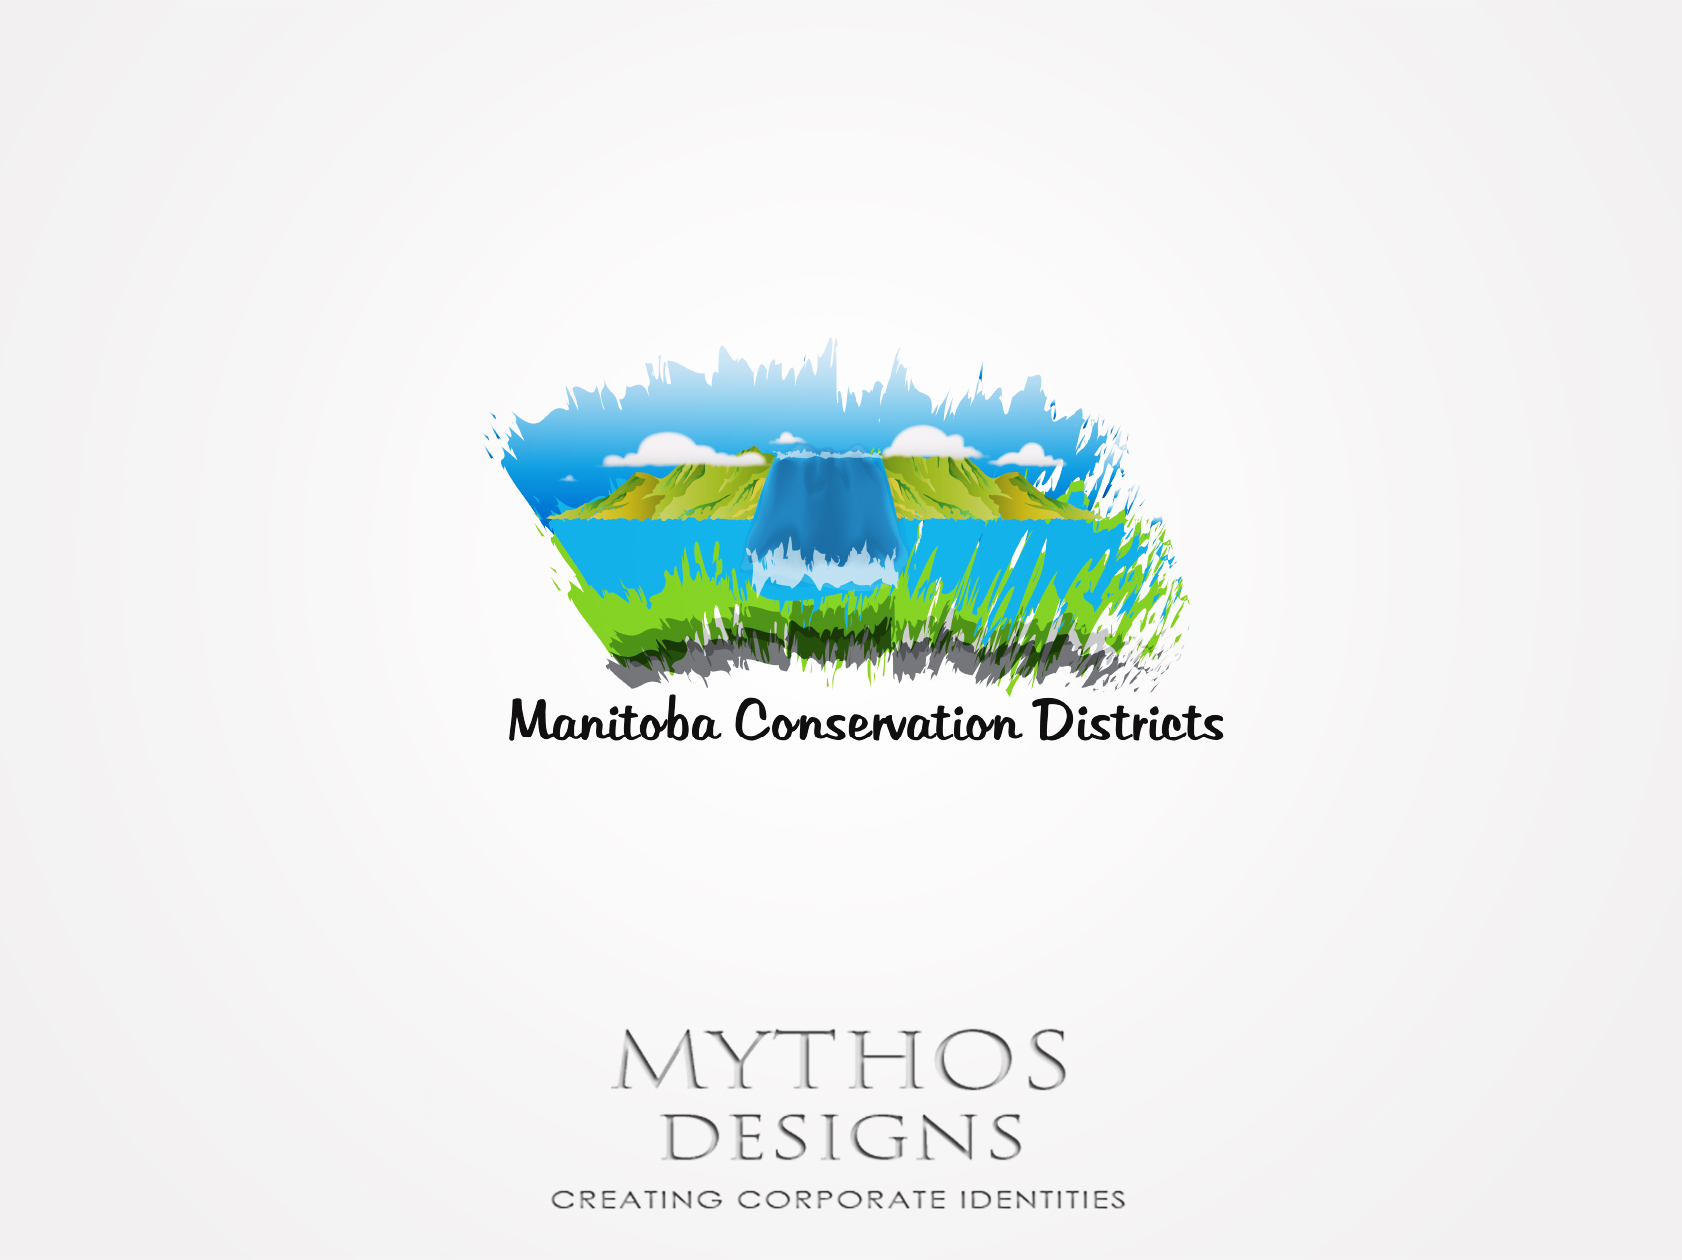 Logo Design by Mythos Designs - Entry No. 22 in the Logo Design Contest Manitoba Conservation Districts Logo Design.